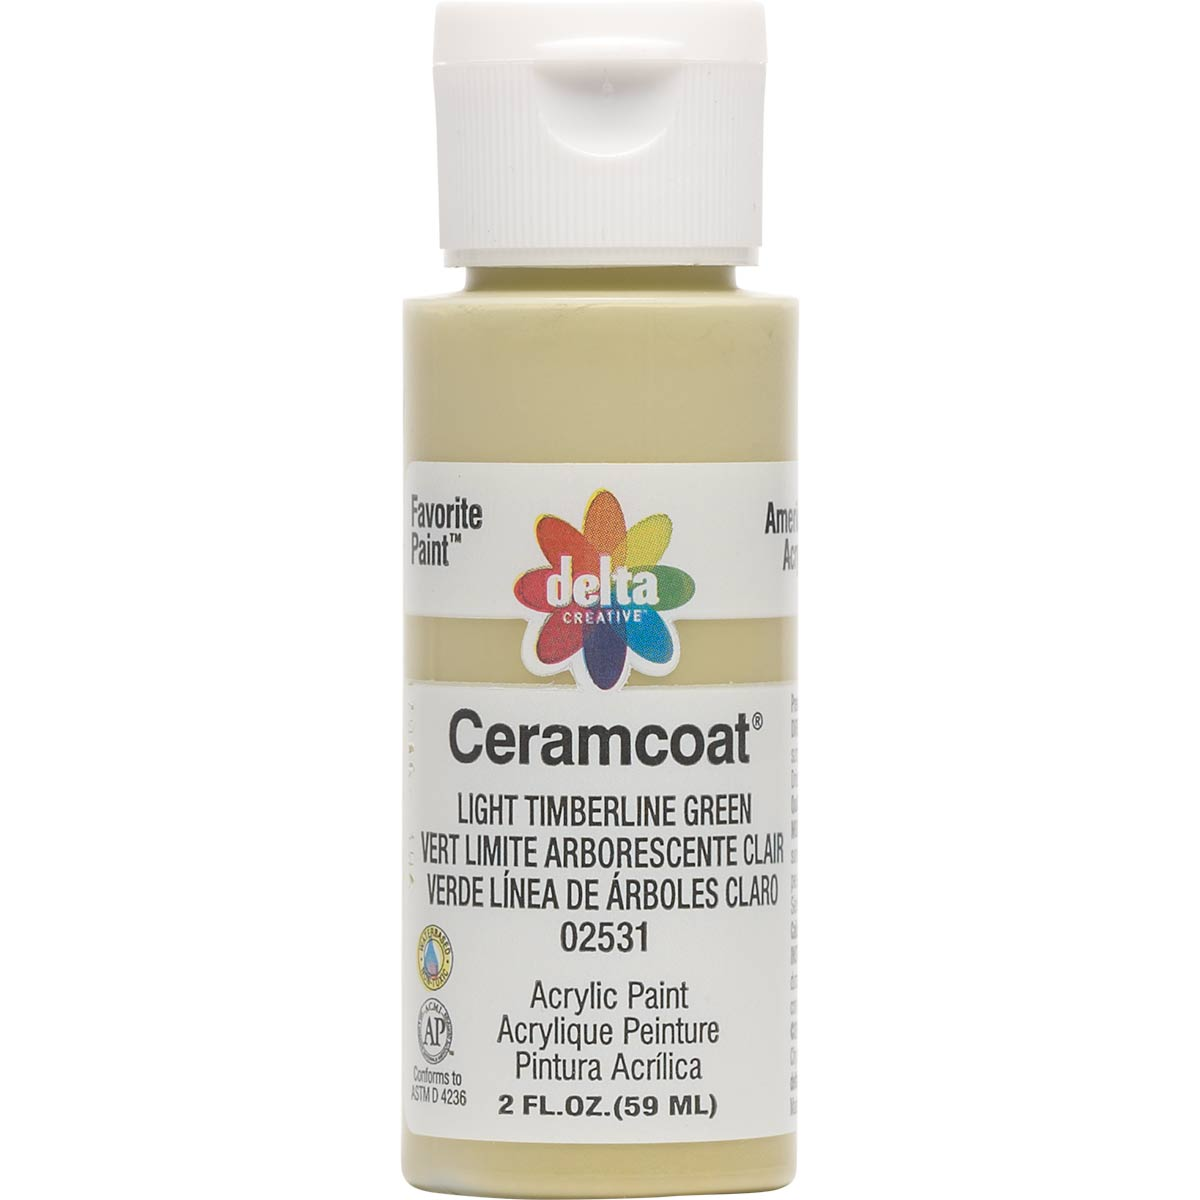 Delta Ceramcoat ® Acrylic Paint - Light Timberline Green, 2 oz.